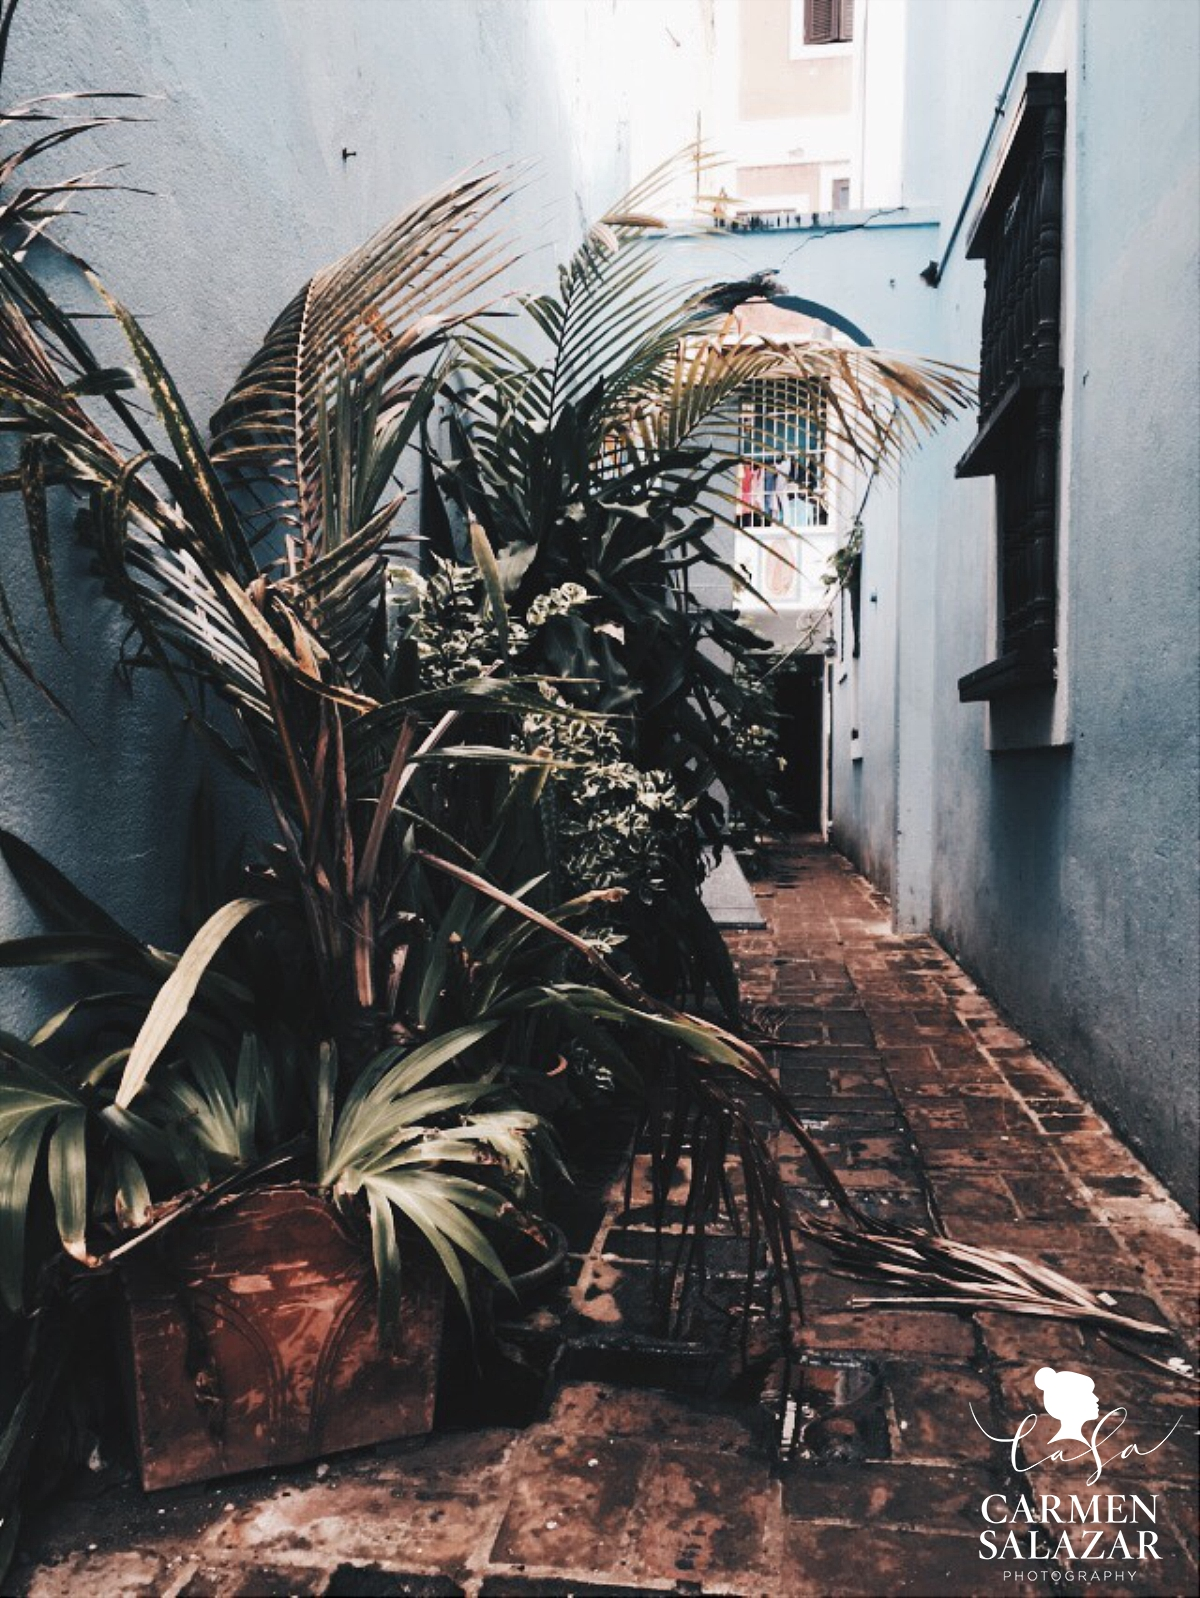 Puerto Rico Destination Photographer with VSCOcam with hb2 preset